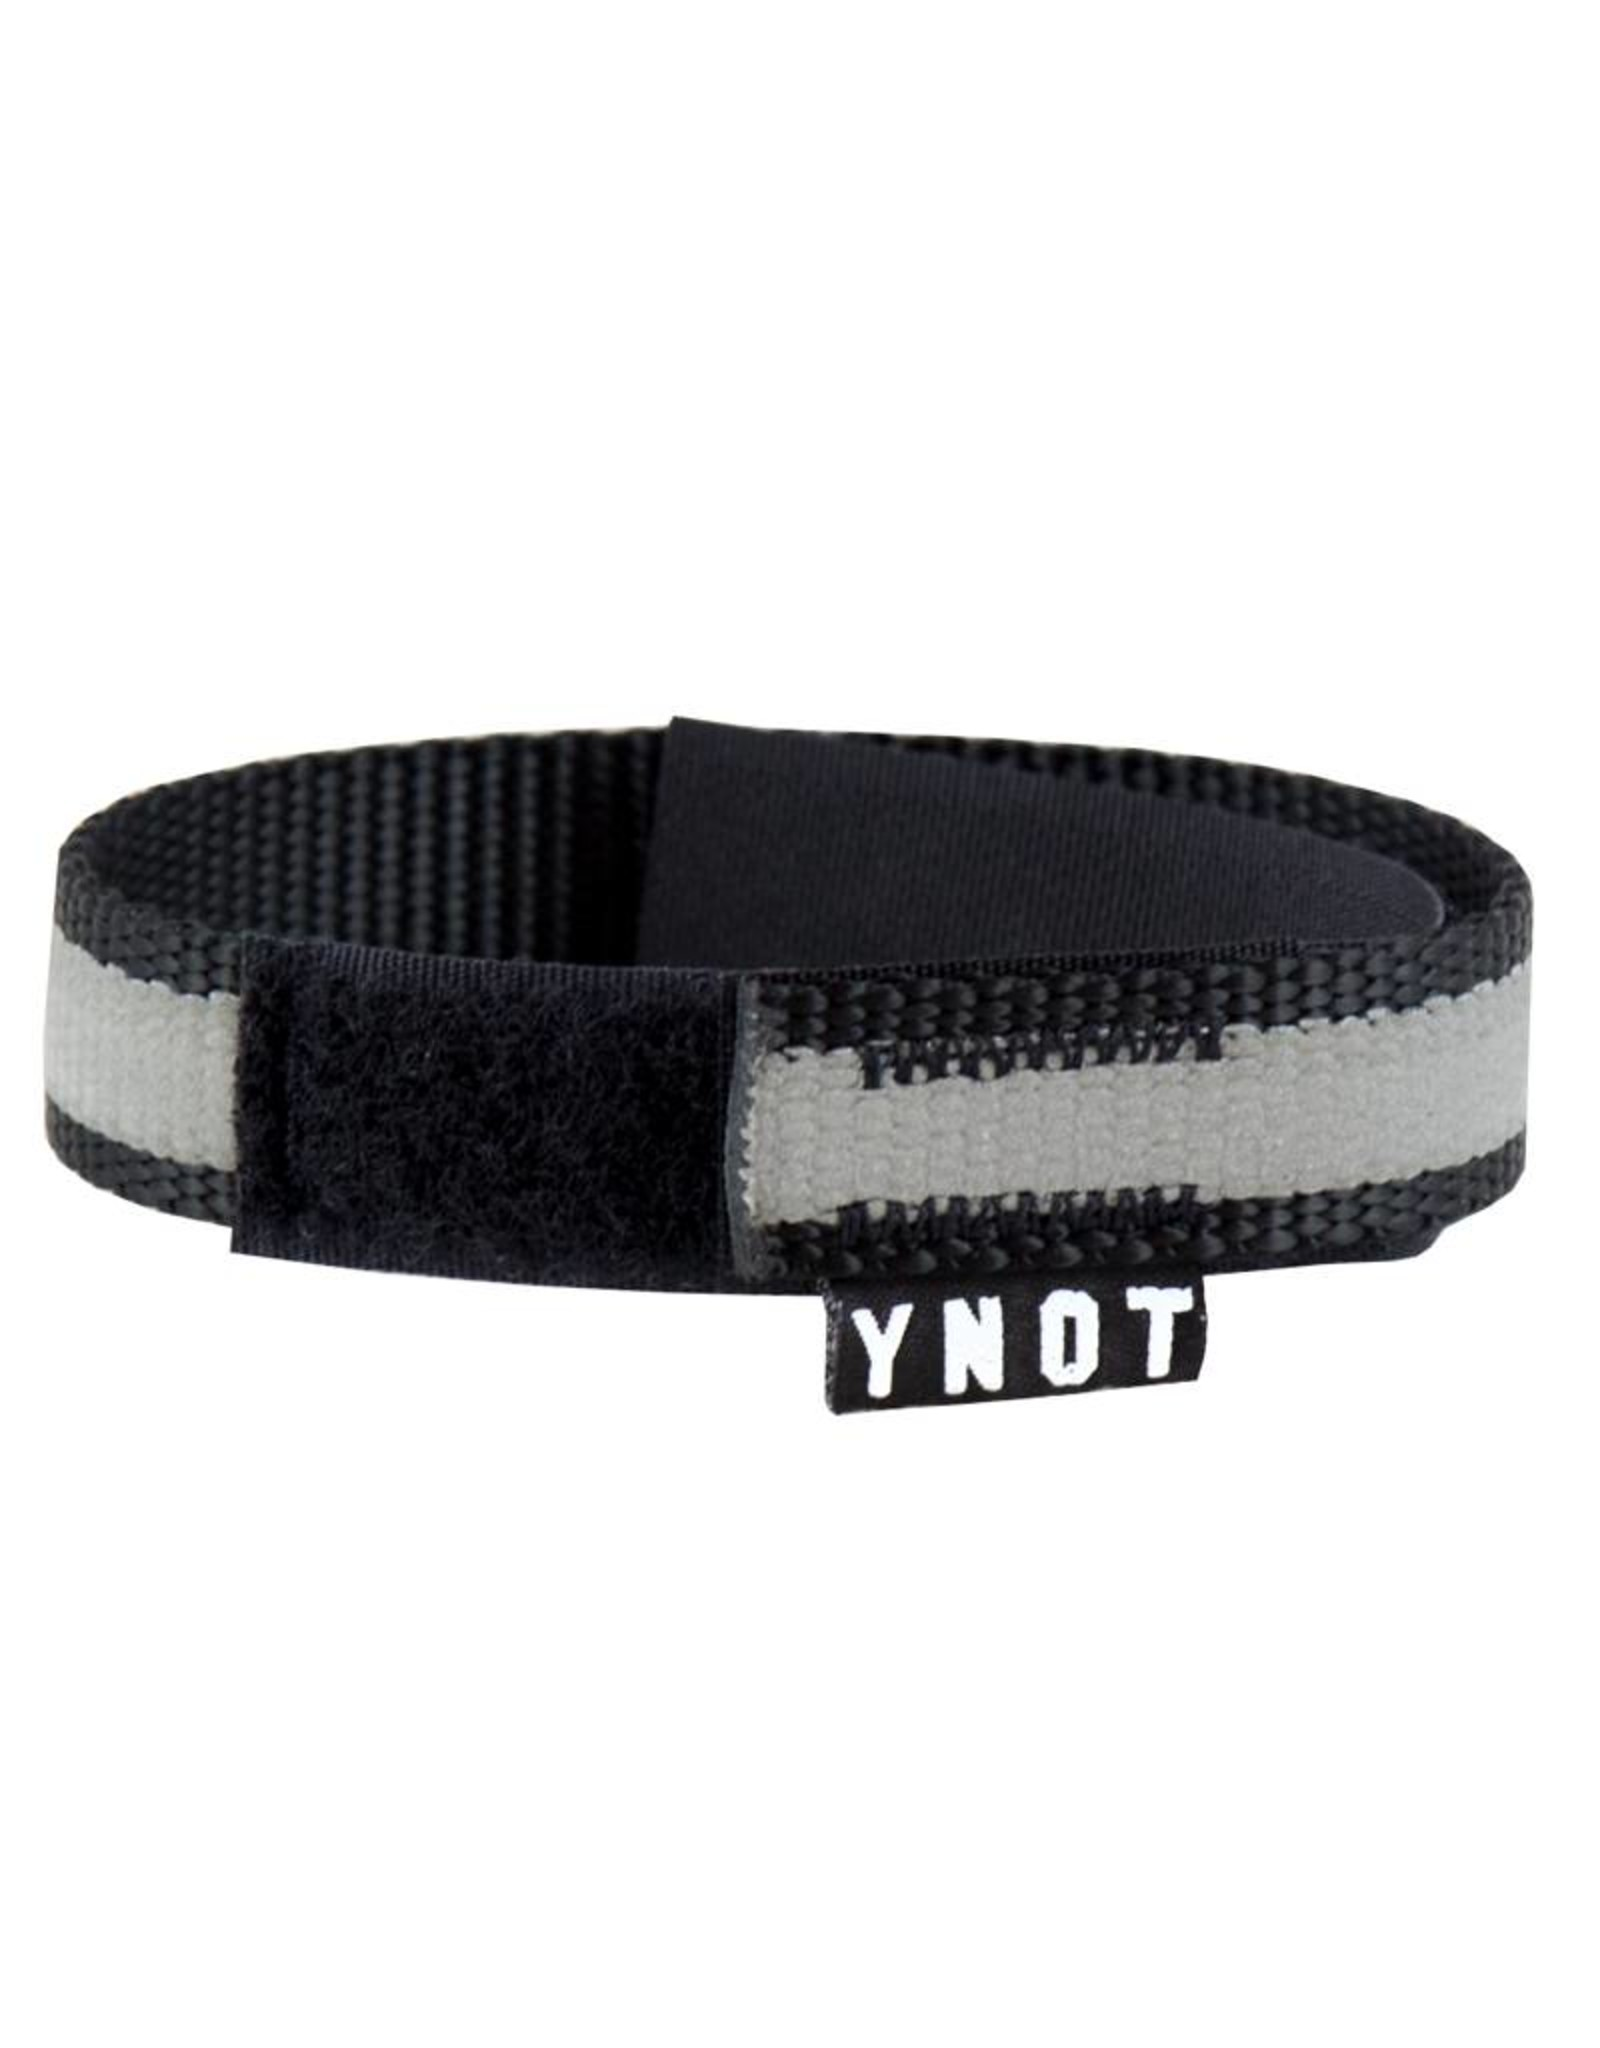 YNOT Reflective Ankle Band